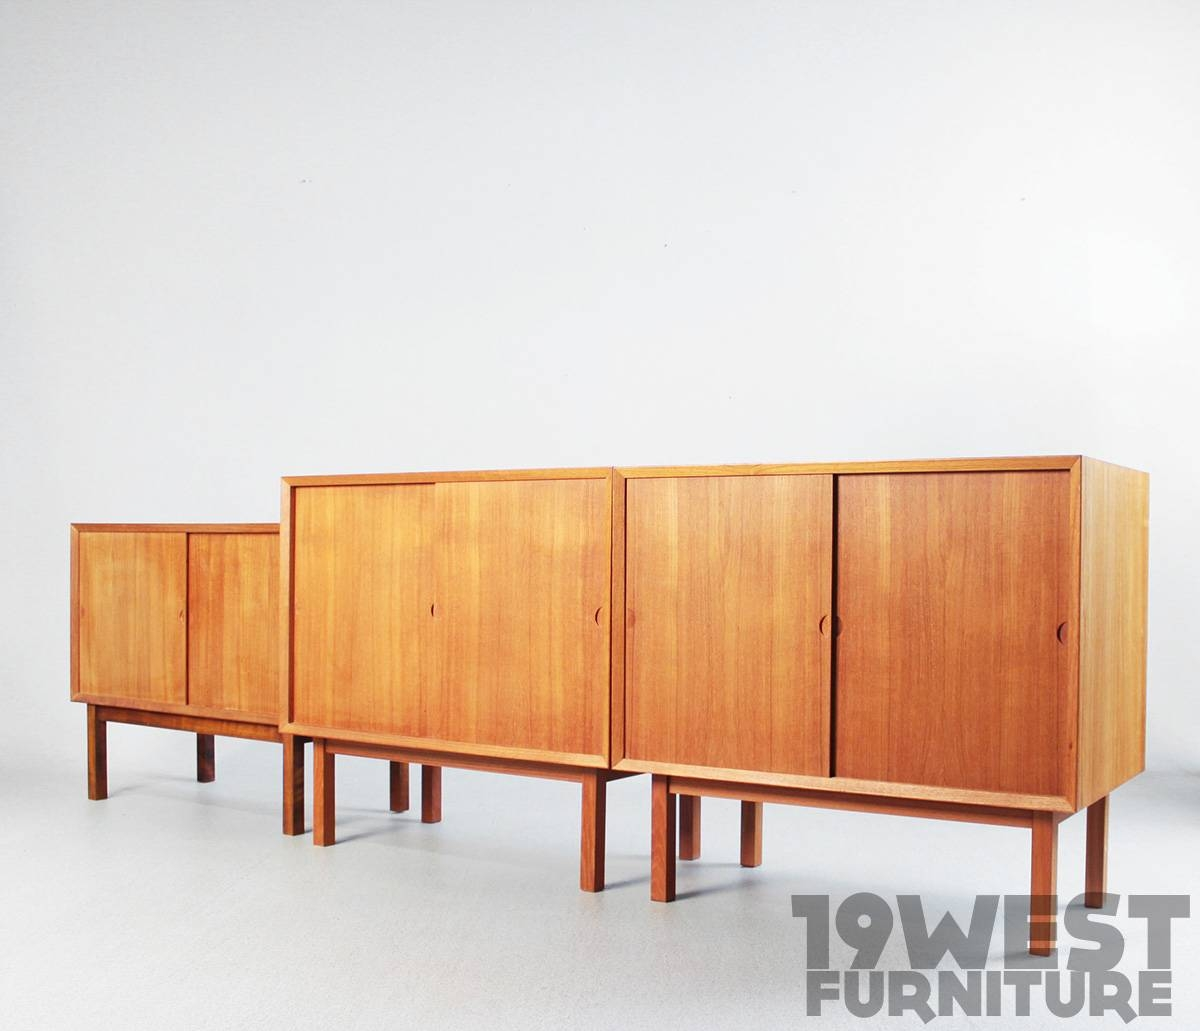 Kleine Sideboards, Poul Cadovius | 19 West Inside Kleine Sideboards (Photo 6 of 15)